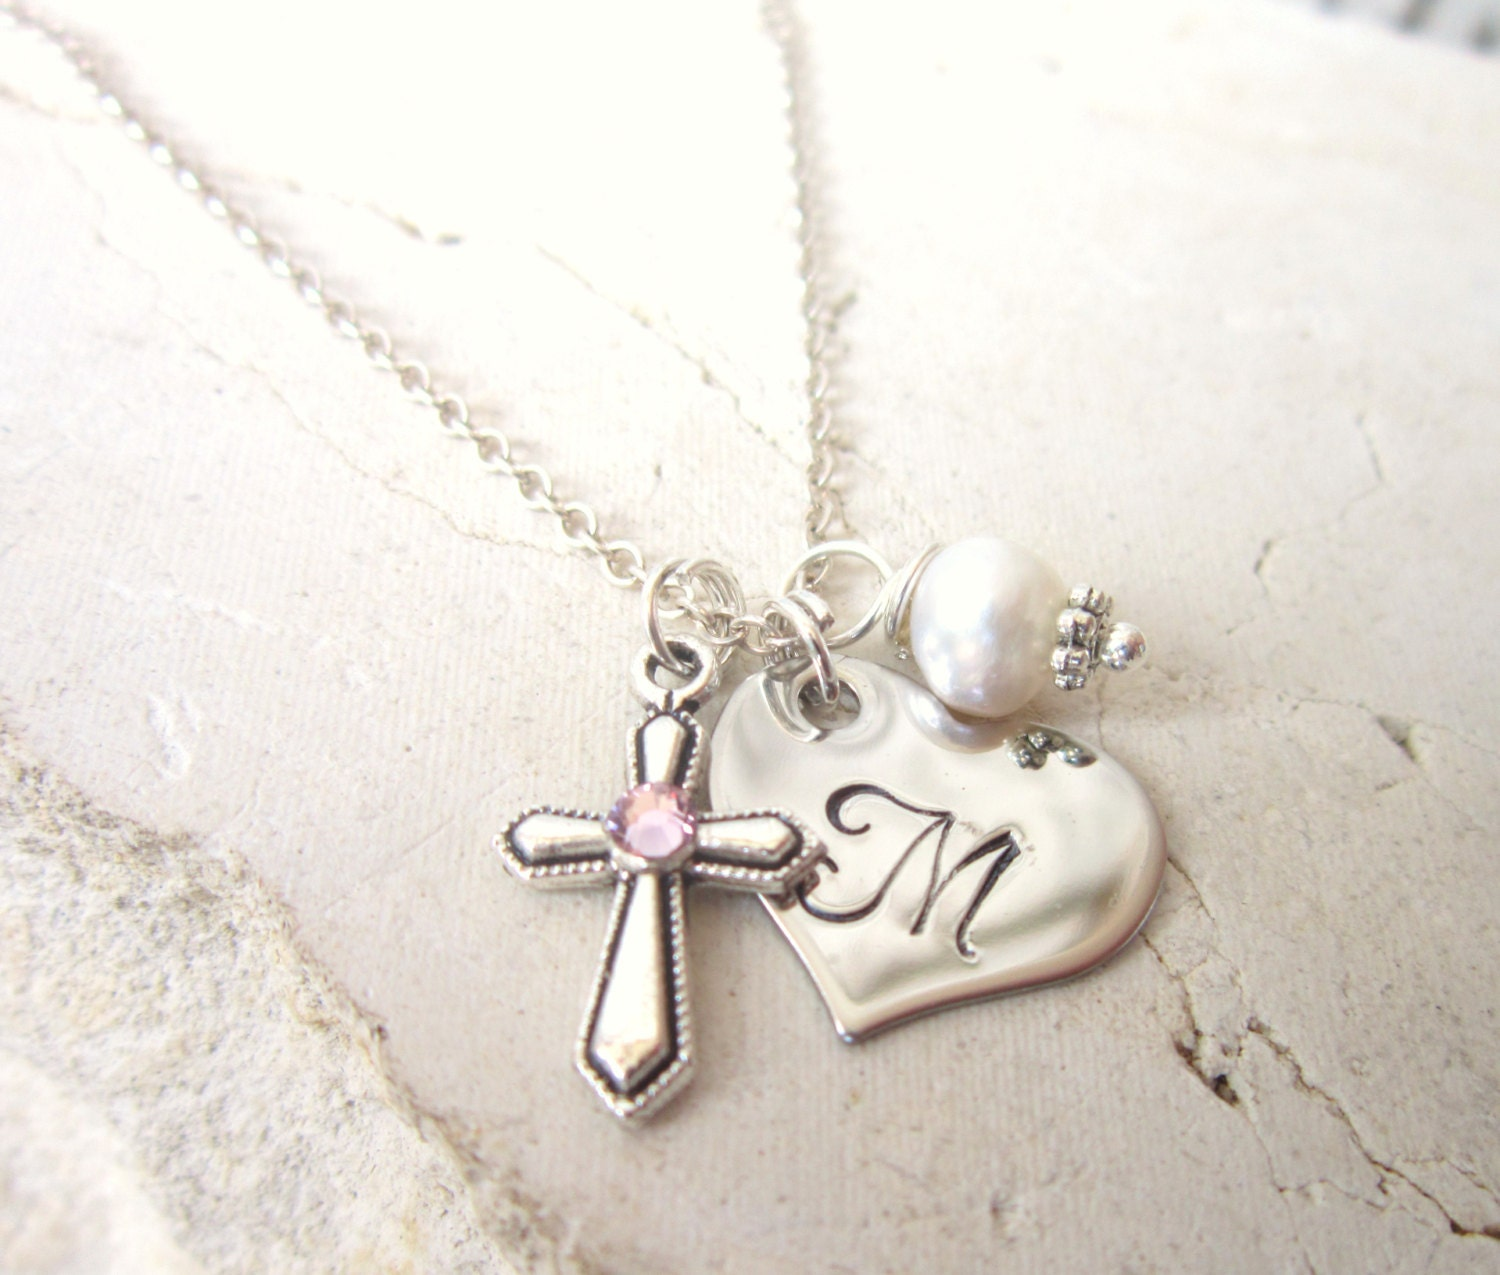 shop studiosimplejewelry gift for new silver cross birthstone first on girl etsy sterling communion savings name goddaughter personalized necklace